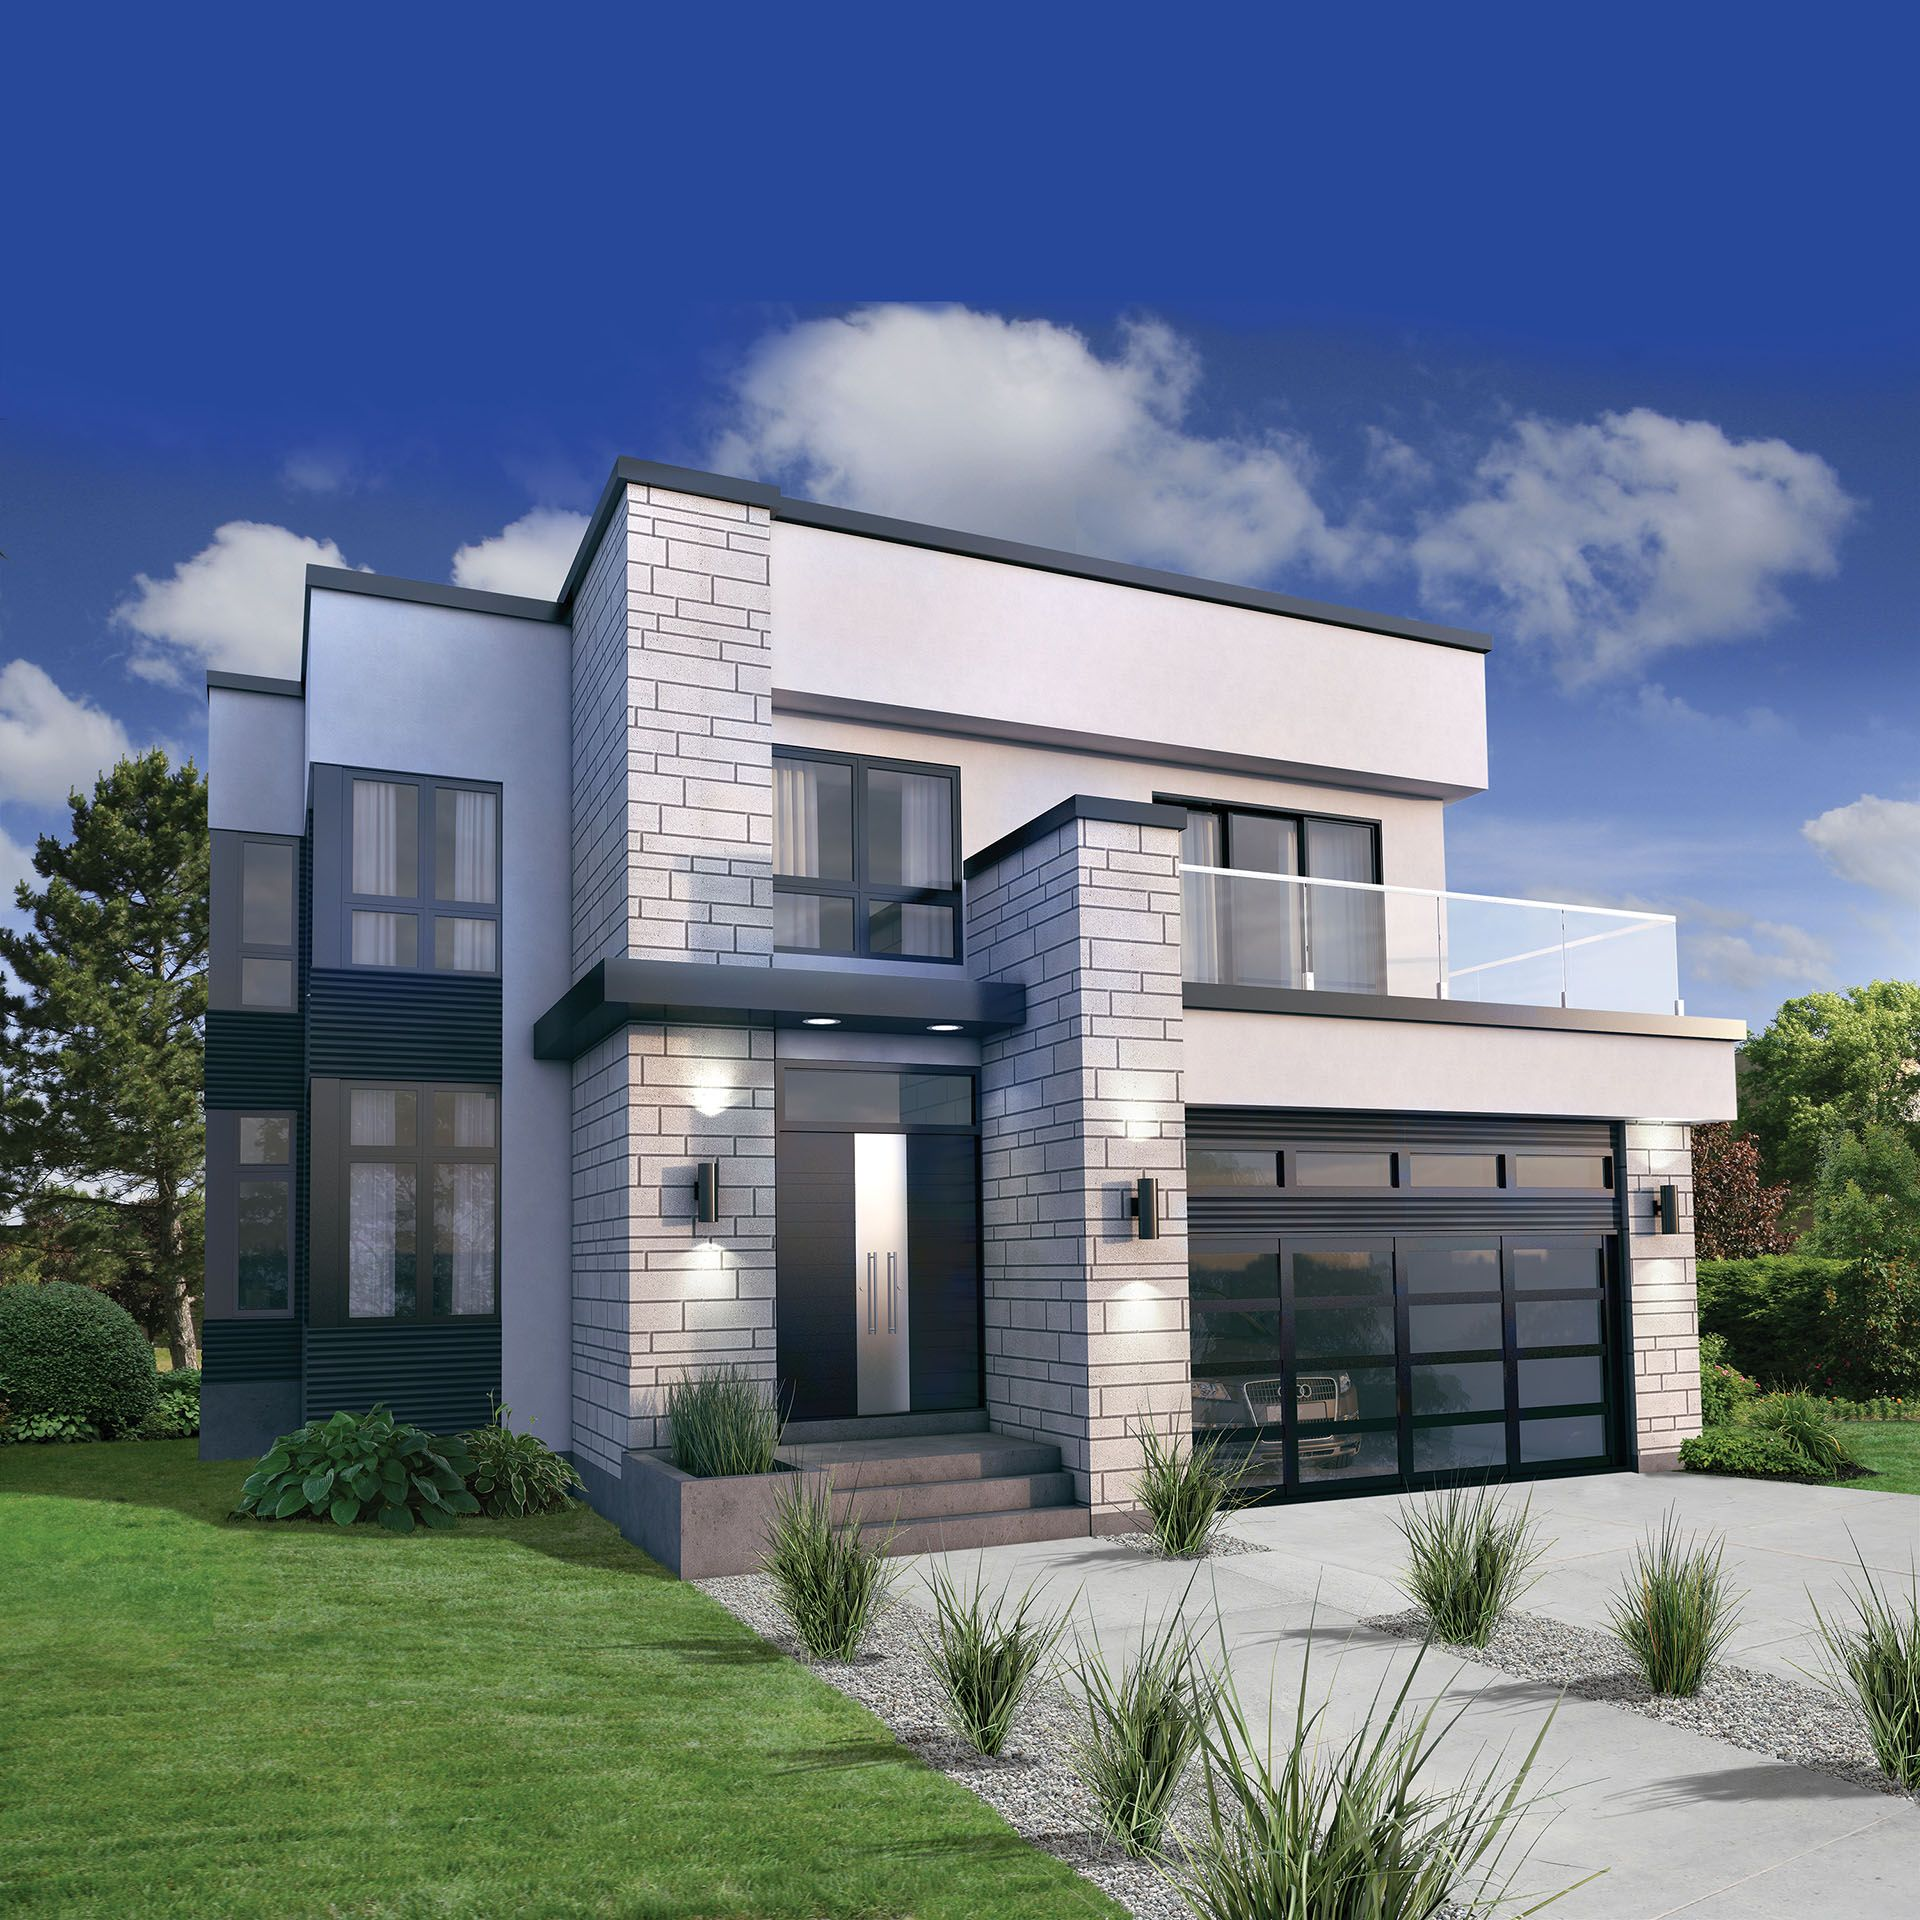 Modern House Designs 3 Bedroom: Master Suite With Wrap-Around Deck